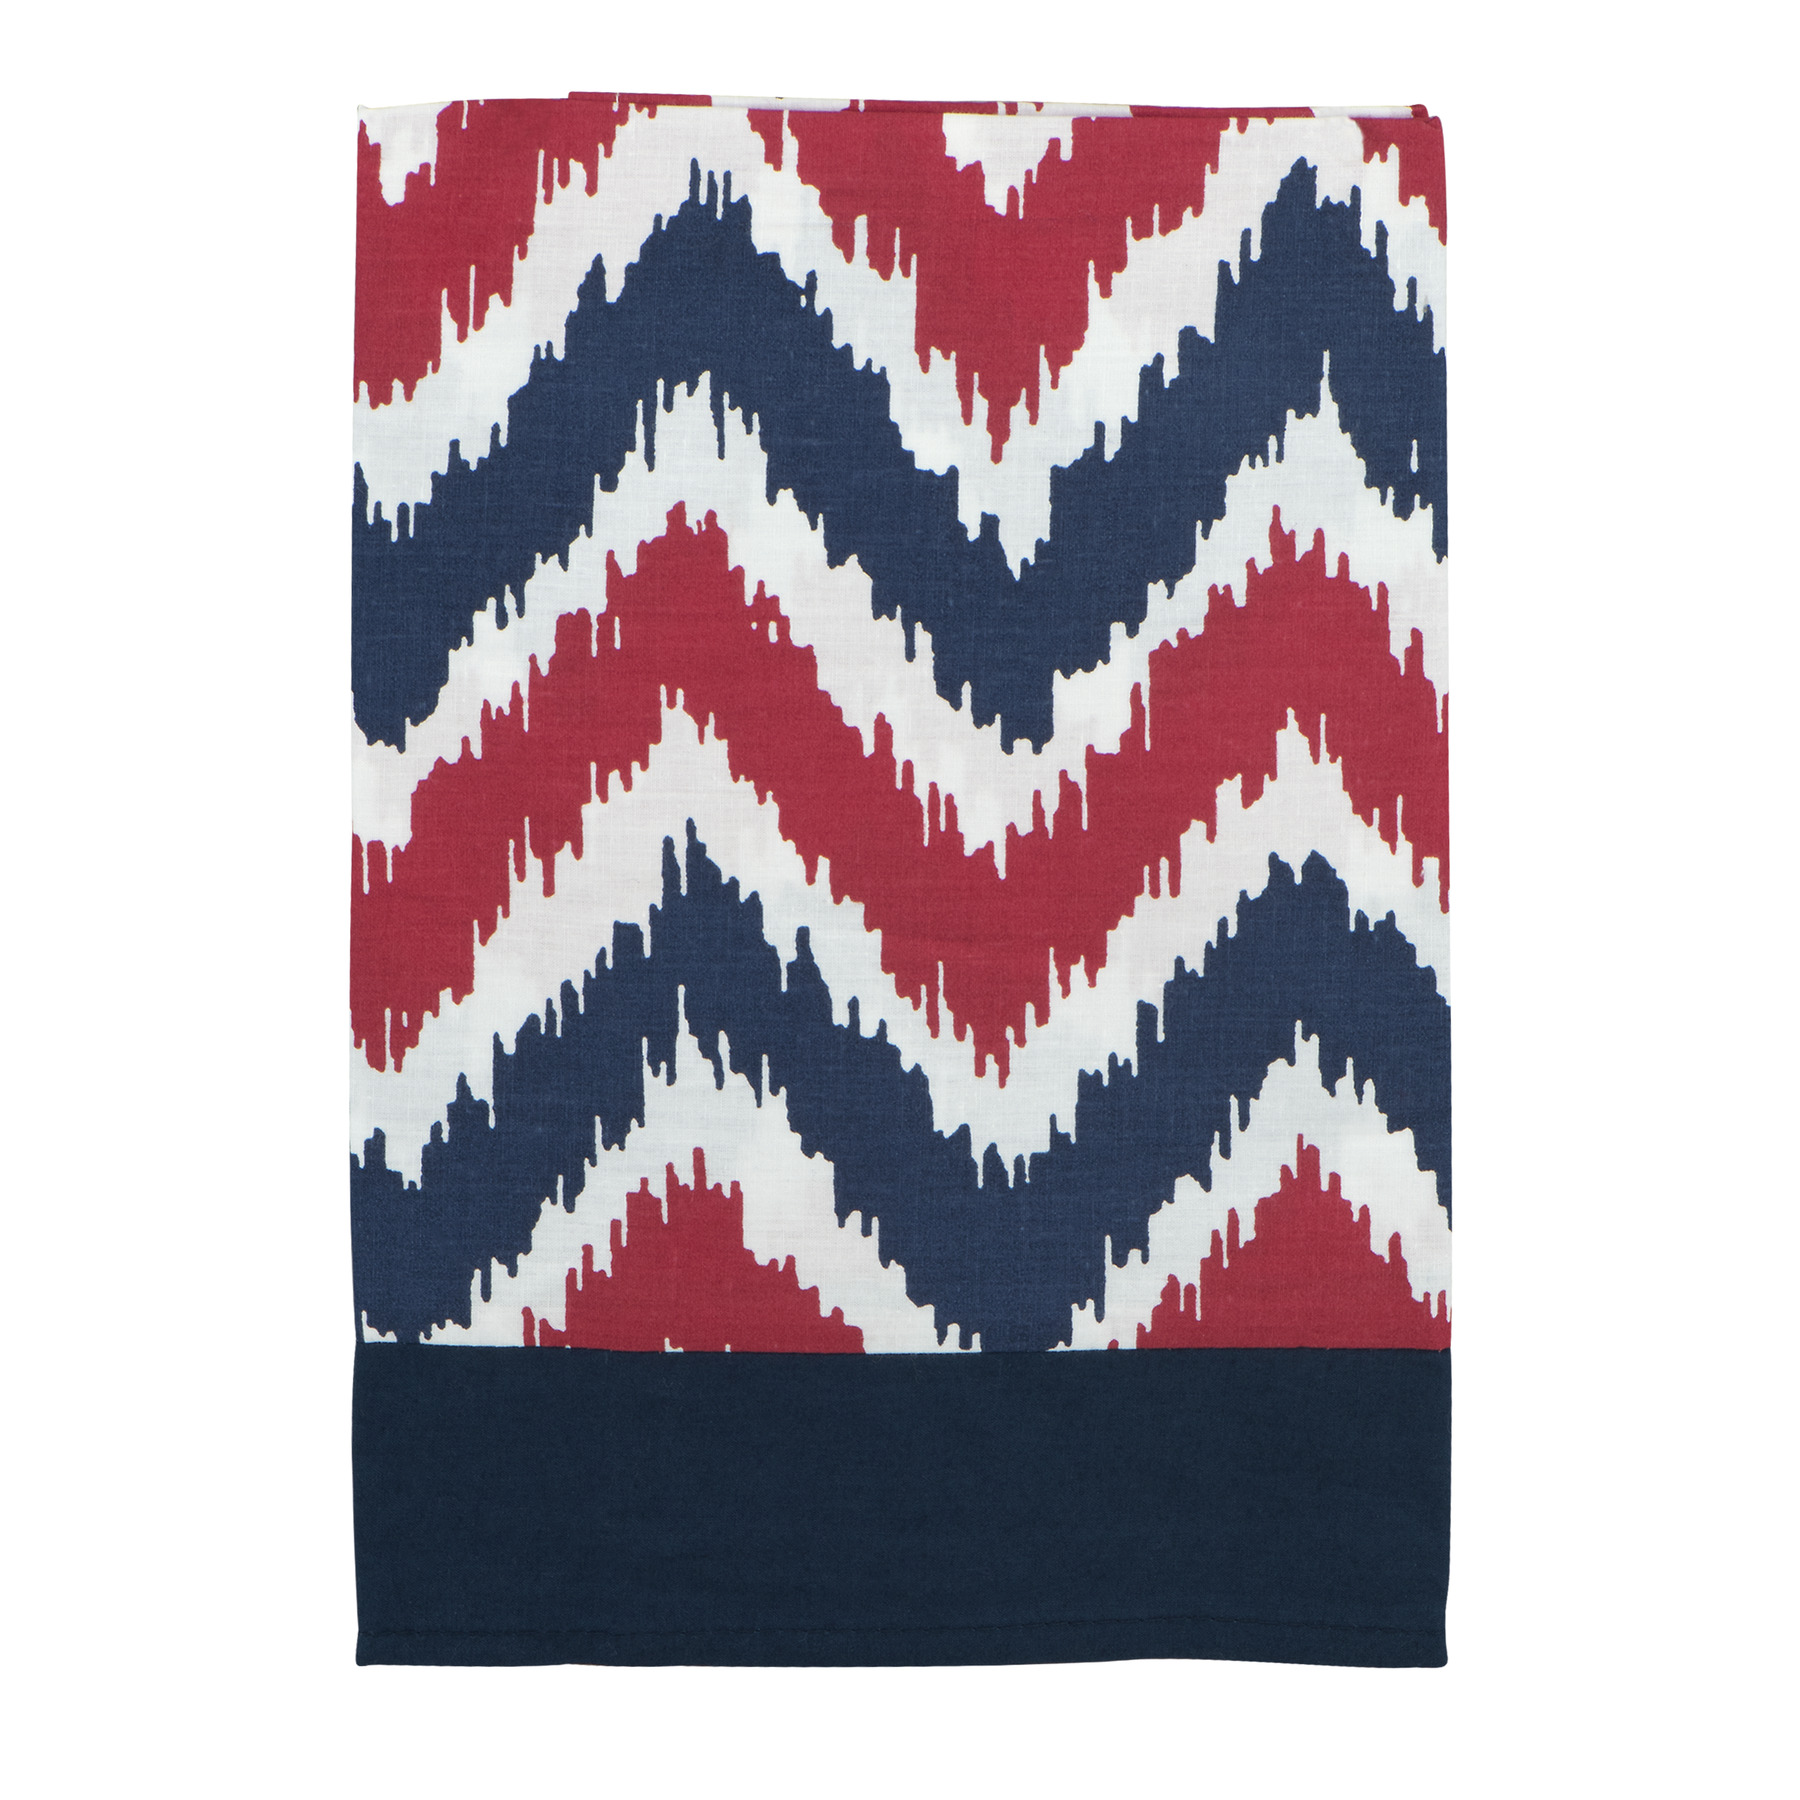 Bacati Window Valance Blue/Red Mix N Match, 1.0 CT